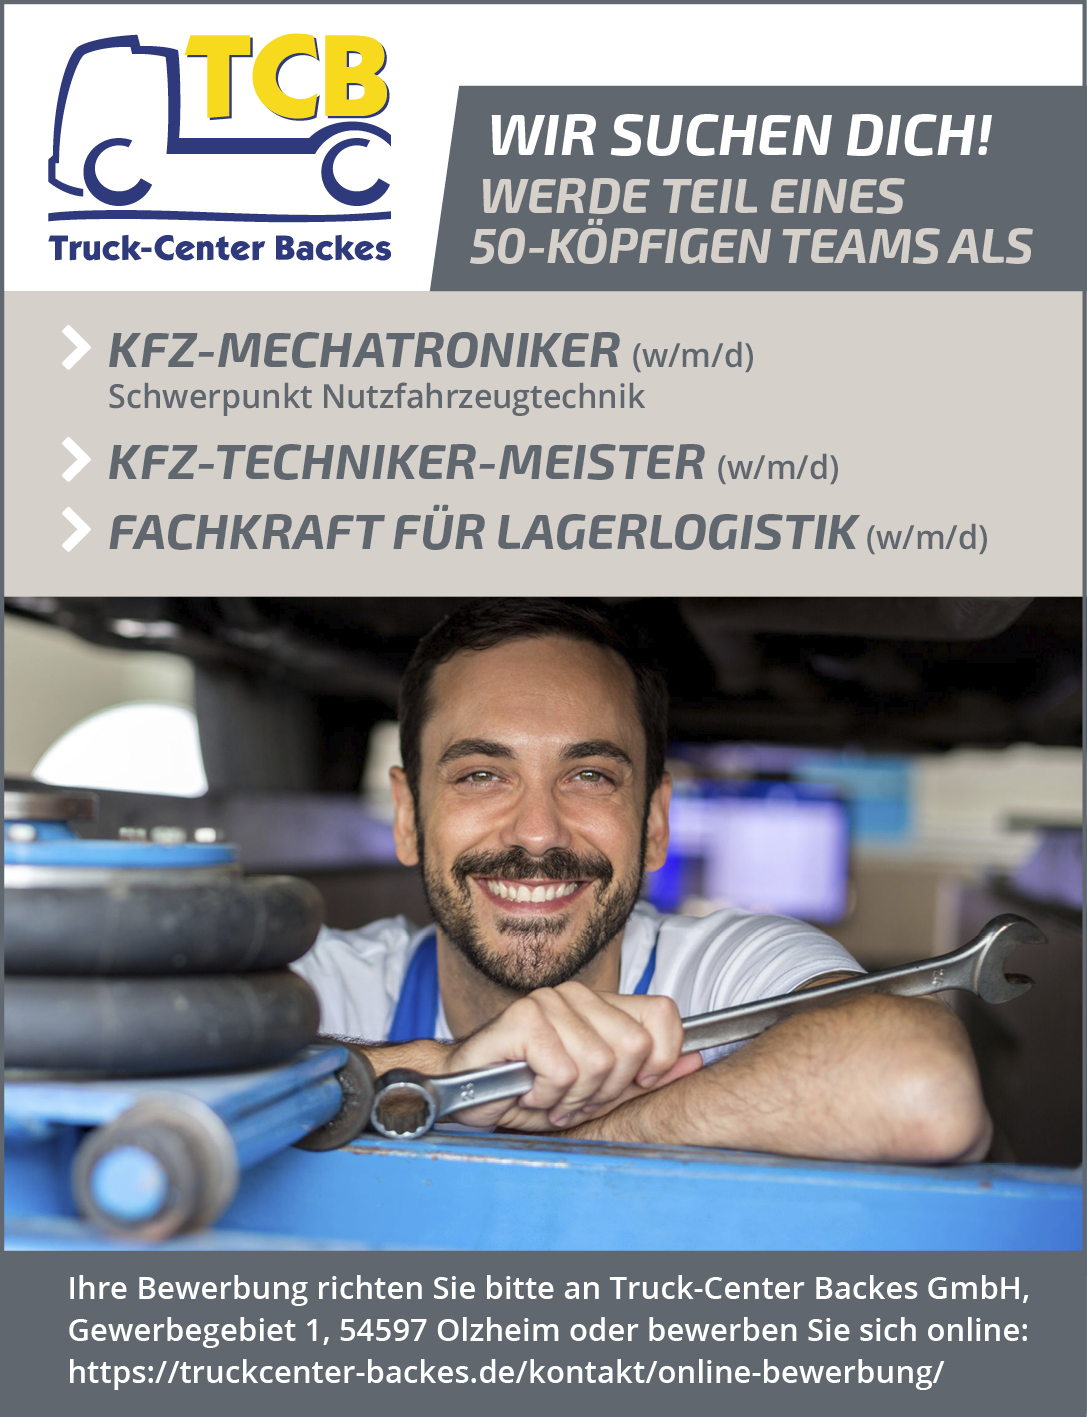 Truck-Center Backes GmbH